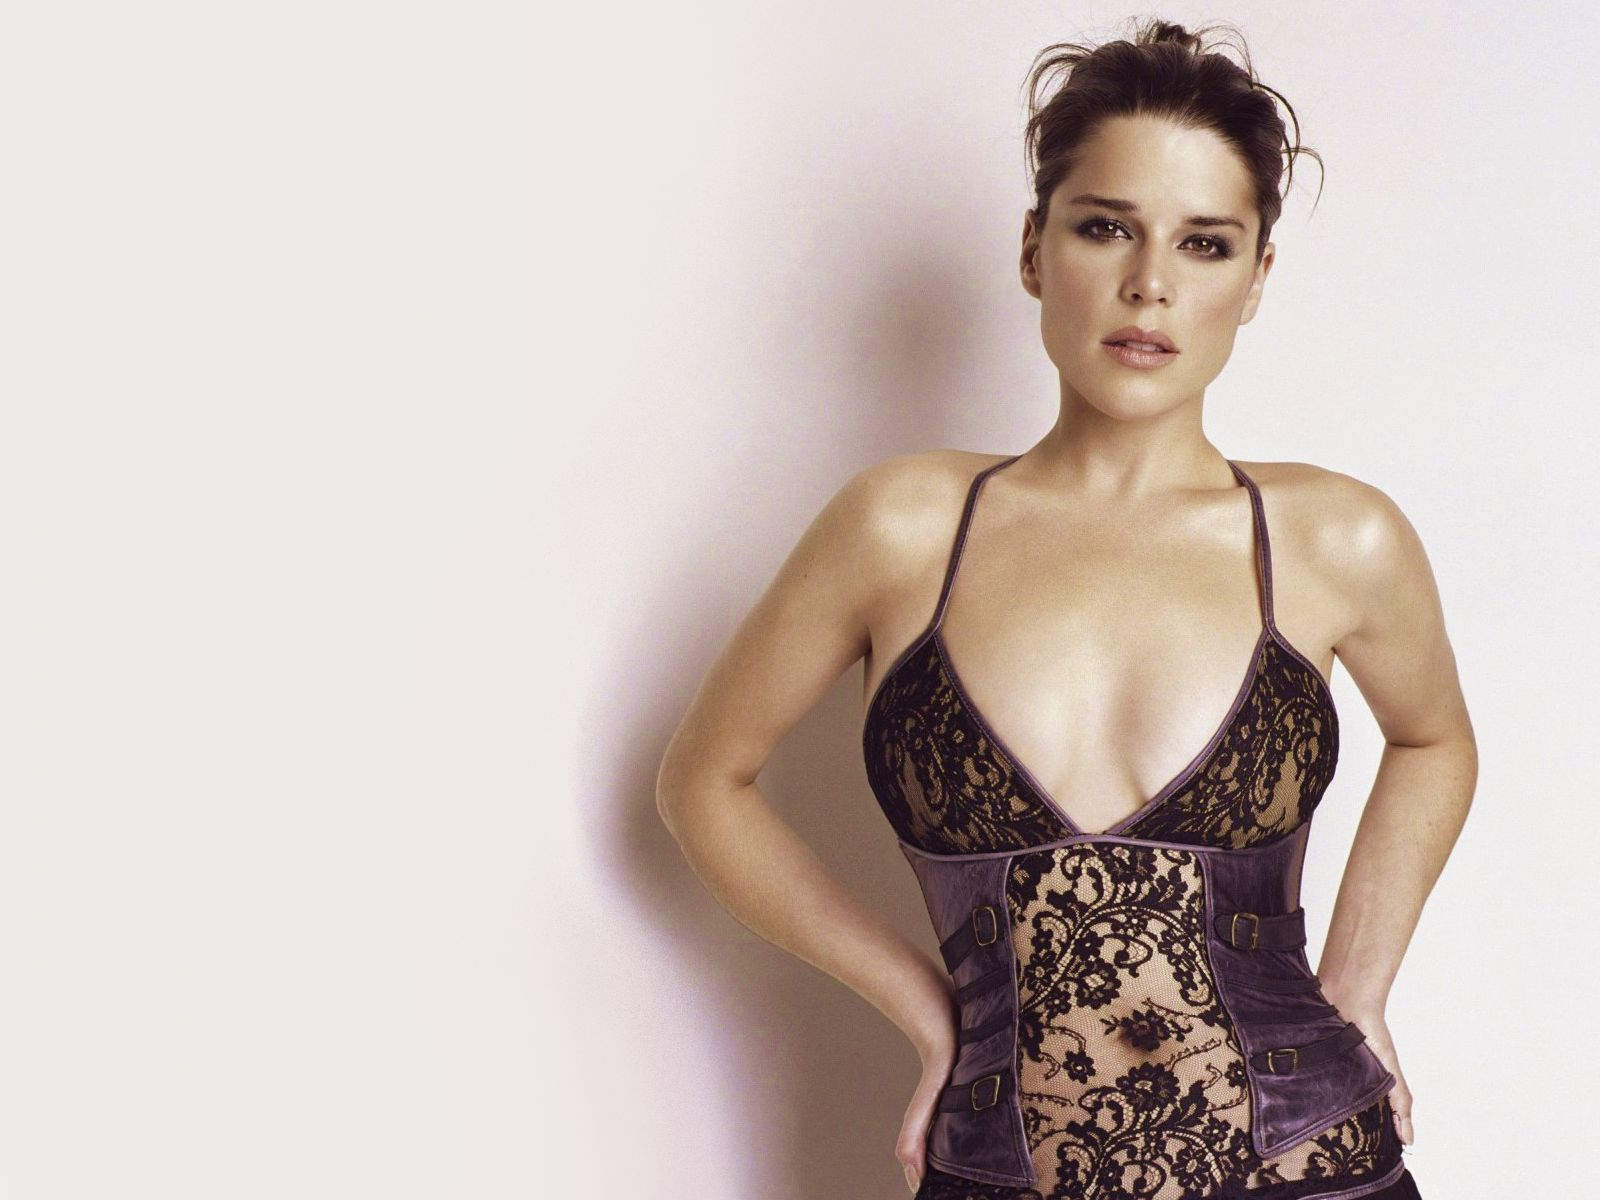 Neve Campbell Wallpapers High Resolution and Quality